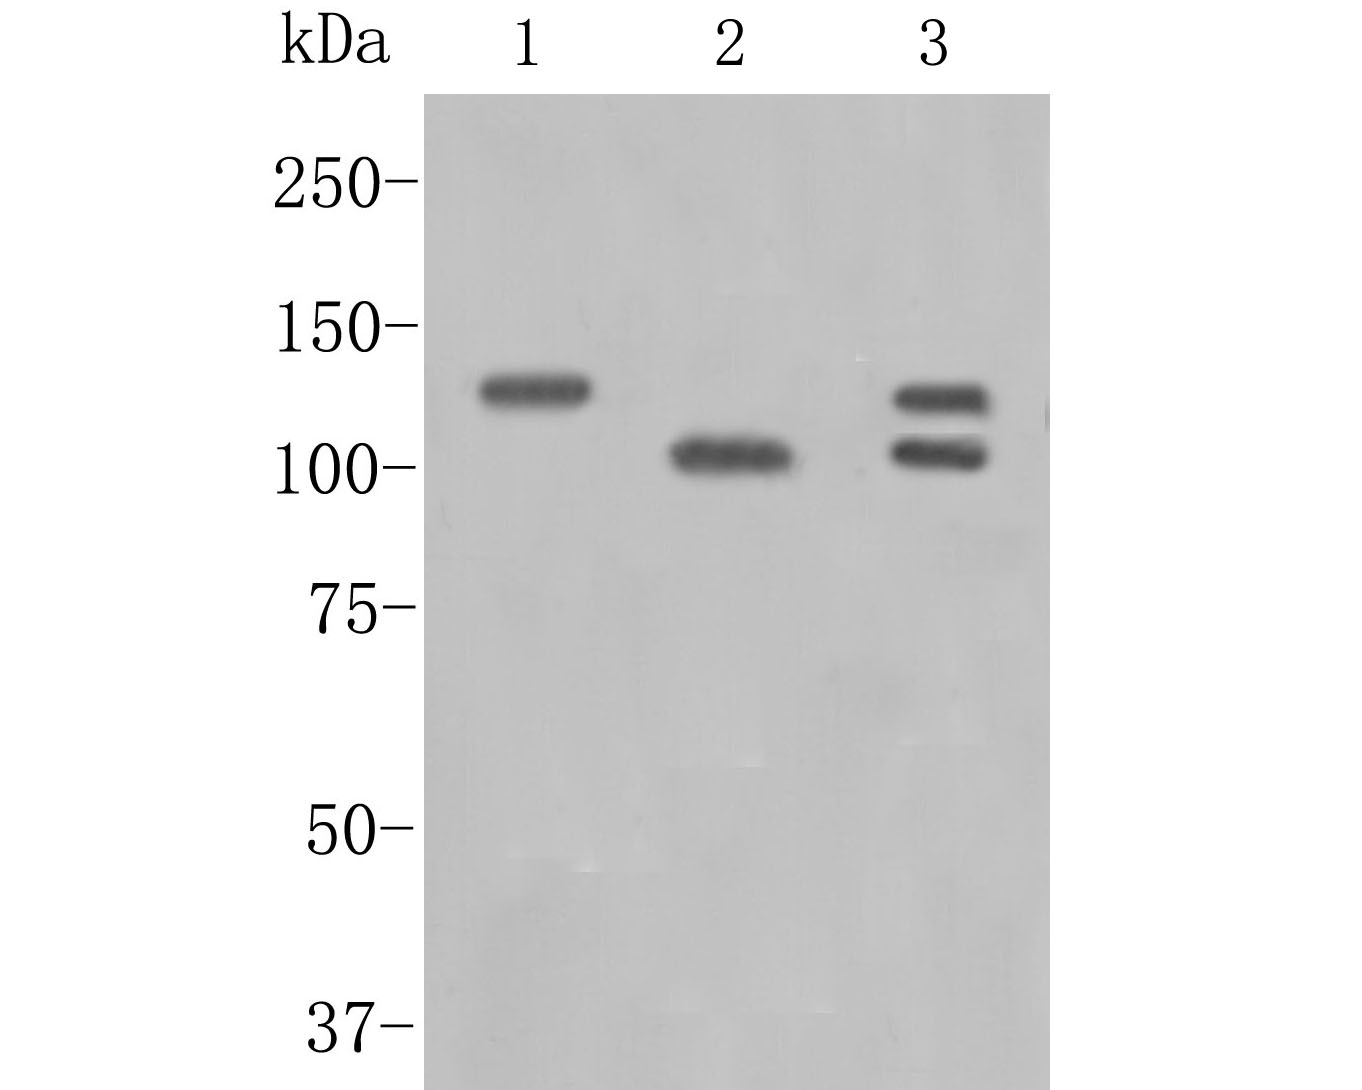 Western blot analysis of APLP2 on different lysates. Proteins were transferred to a PVDF membrane and blocked with 5% BSA in PBS for 1 hour at room temperature. The primary antibody (ET7110-78, 1/500) was used in 5% BSA at room temperature for 2 hours. Goat Anti-Rabbit IgG - HRP Secondary Antibody (HA1001) at 1:5,000 dilution was used for 1 hour at room temperature.<br /> Positive control: <br /> Lane 1: Rat brian tissue lysate<br /> Lane 2: Human placenta tissue lysate<br /> Lane 3: Hela cell lysate